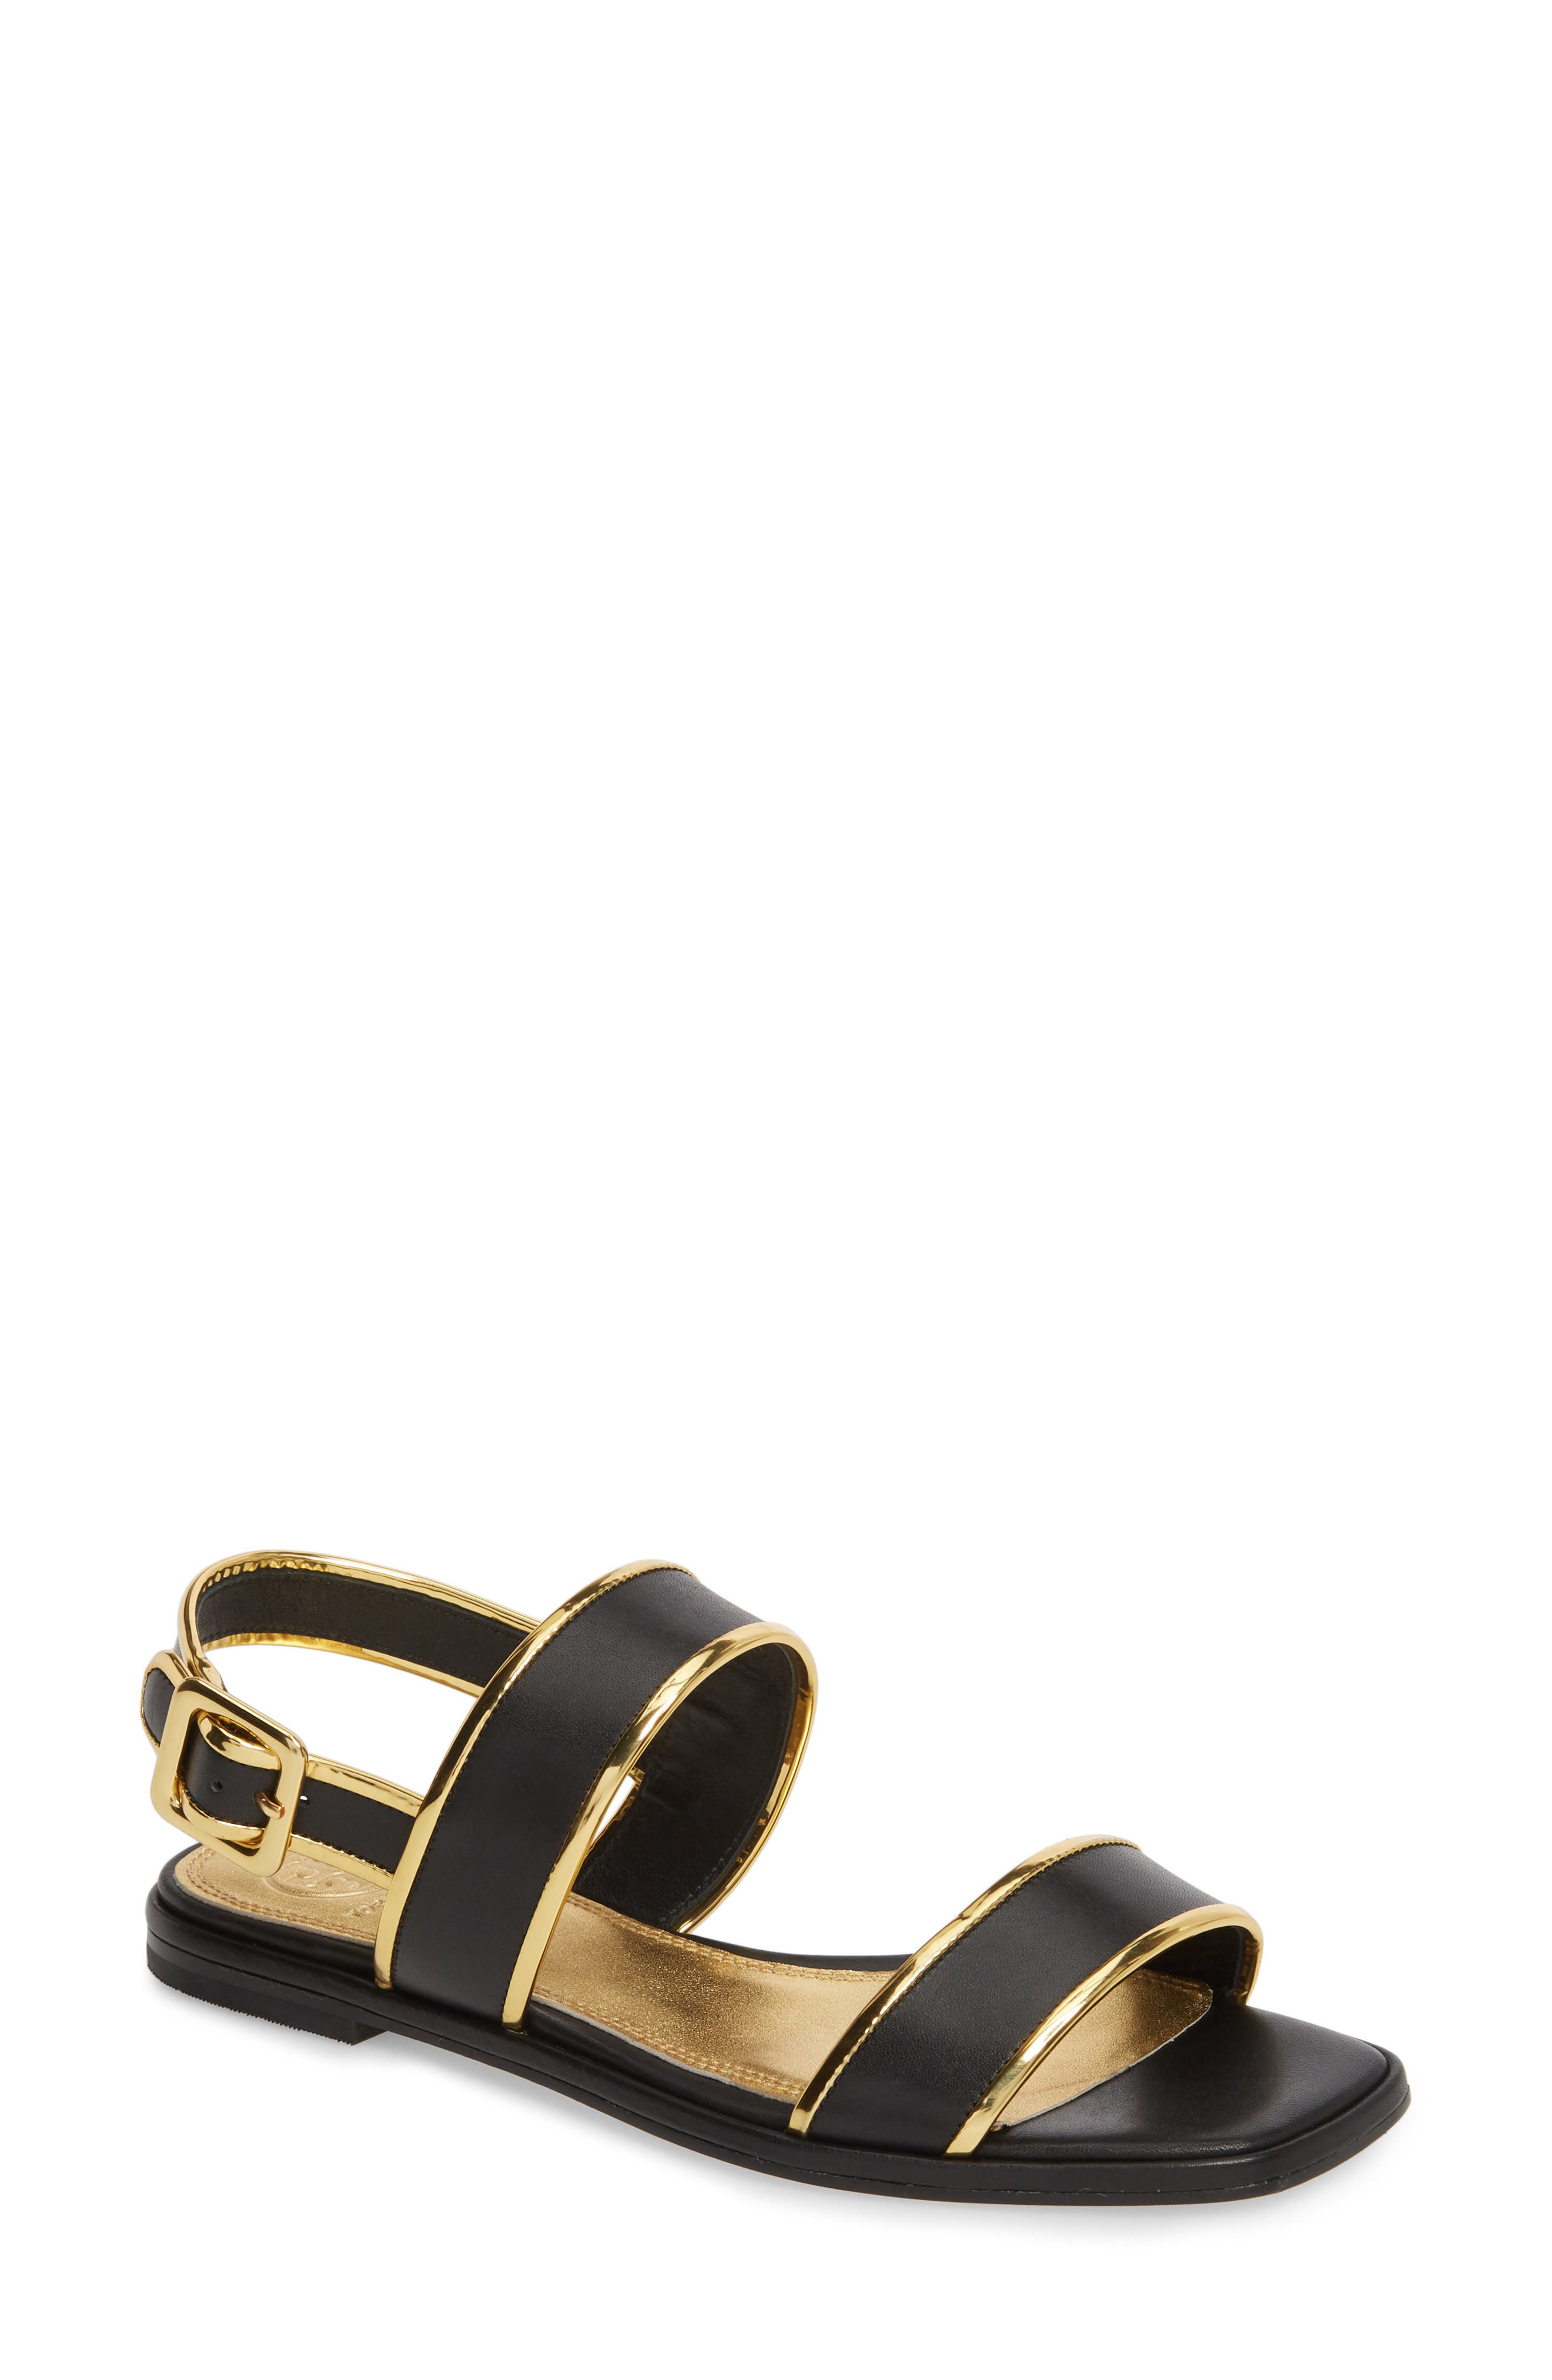 Delaney Double Strap Sandal,                         Main,                         color,